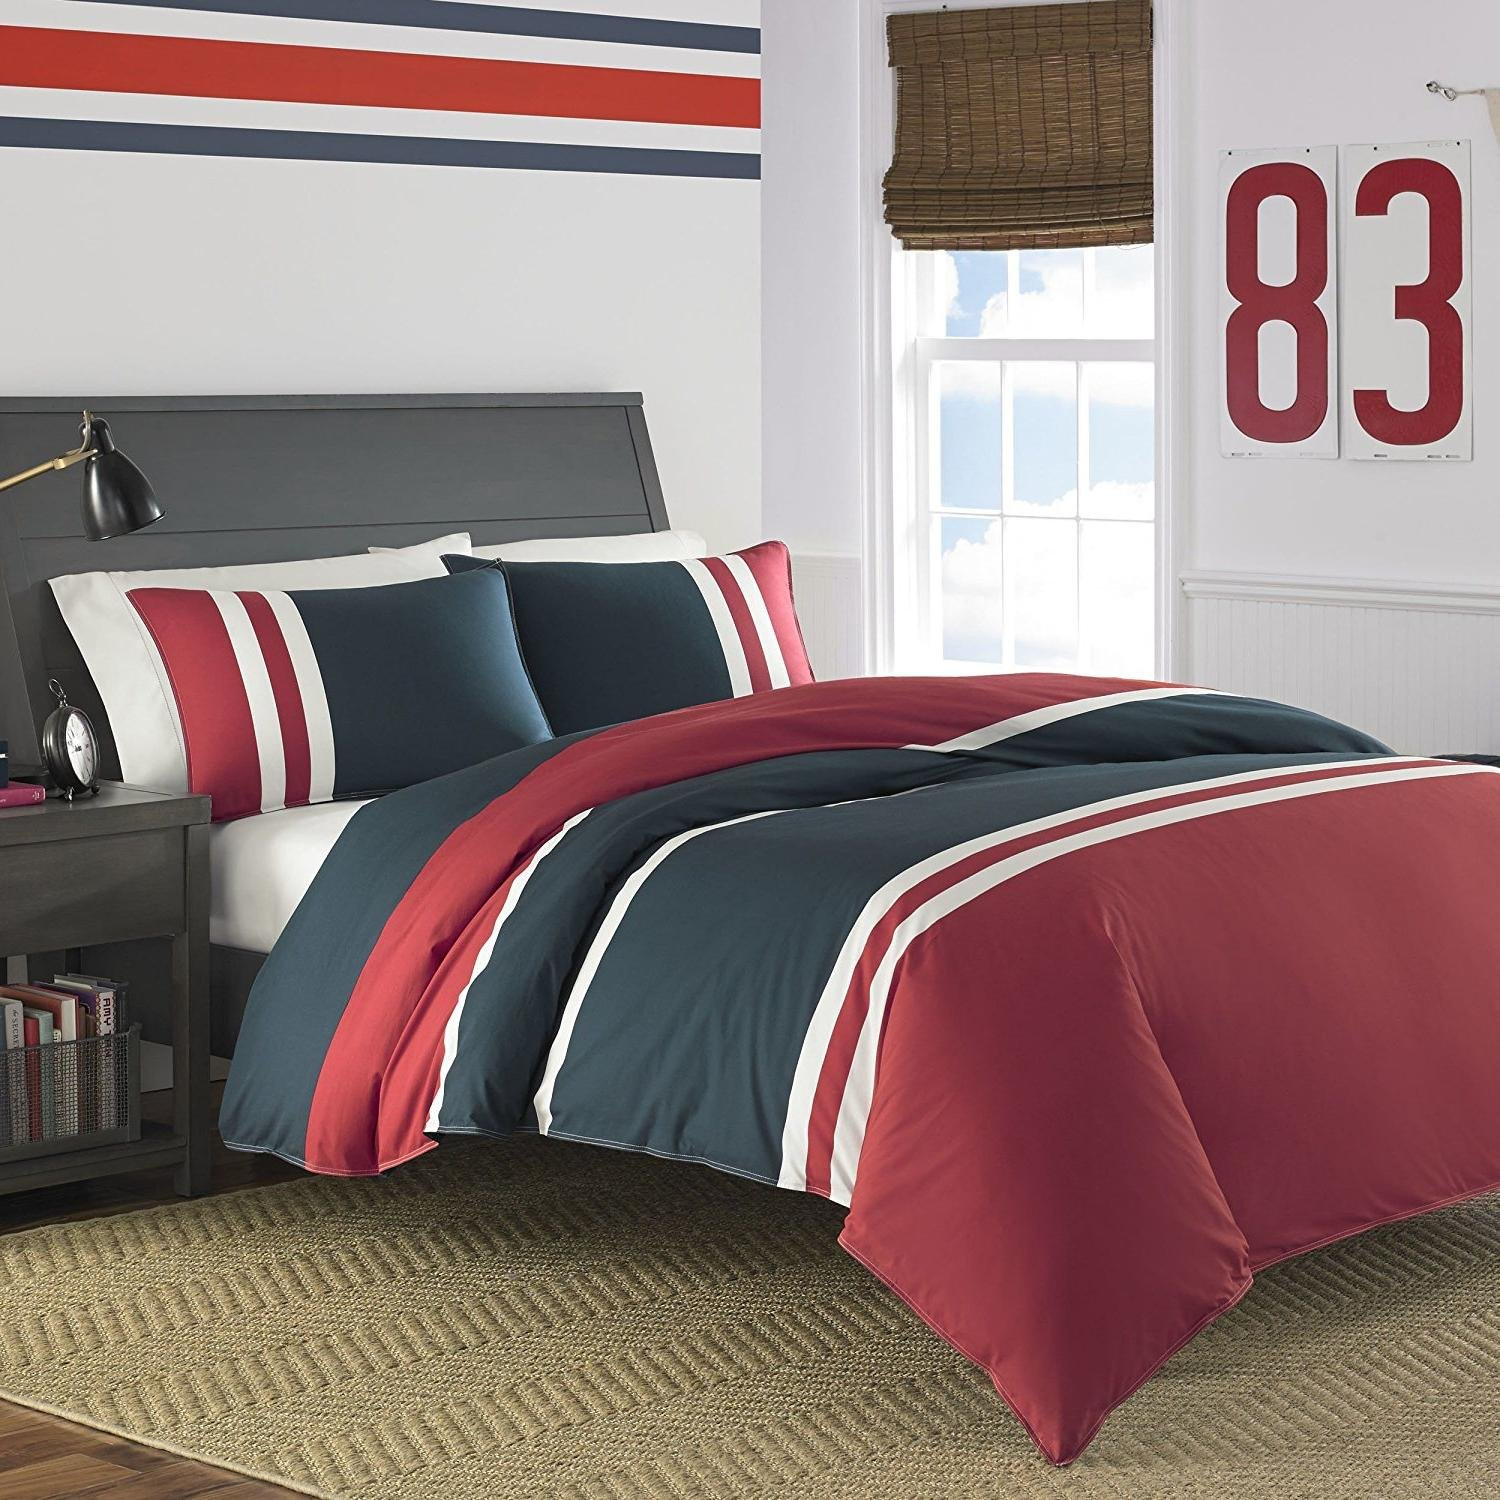 3pc Colorful Navy Blue Red Rugby Stripes Comforter Full Queen Set, Percale Cotton, White Striped Bedding Horizontal Colorblock Pattern Sports Themed Colors Nautical Coastal College Dorm